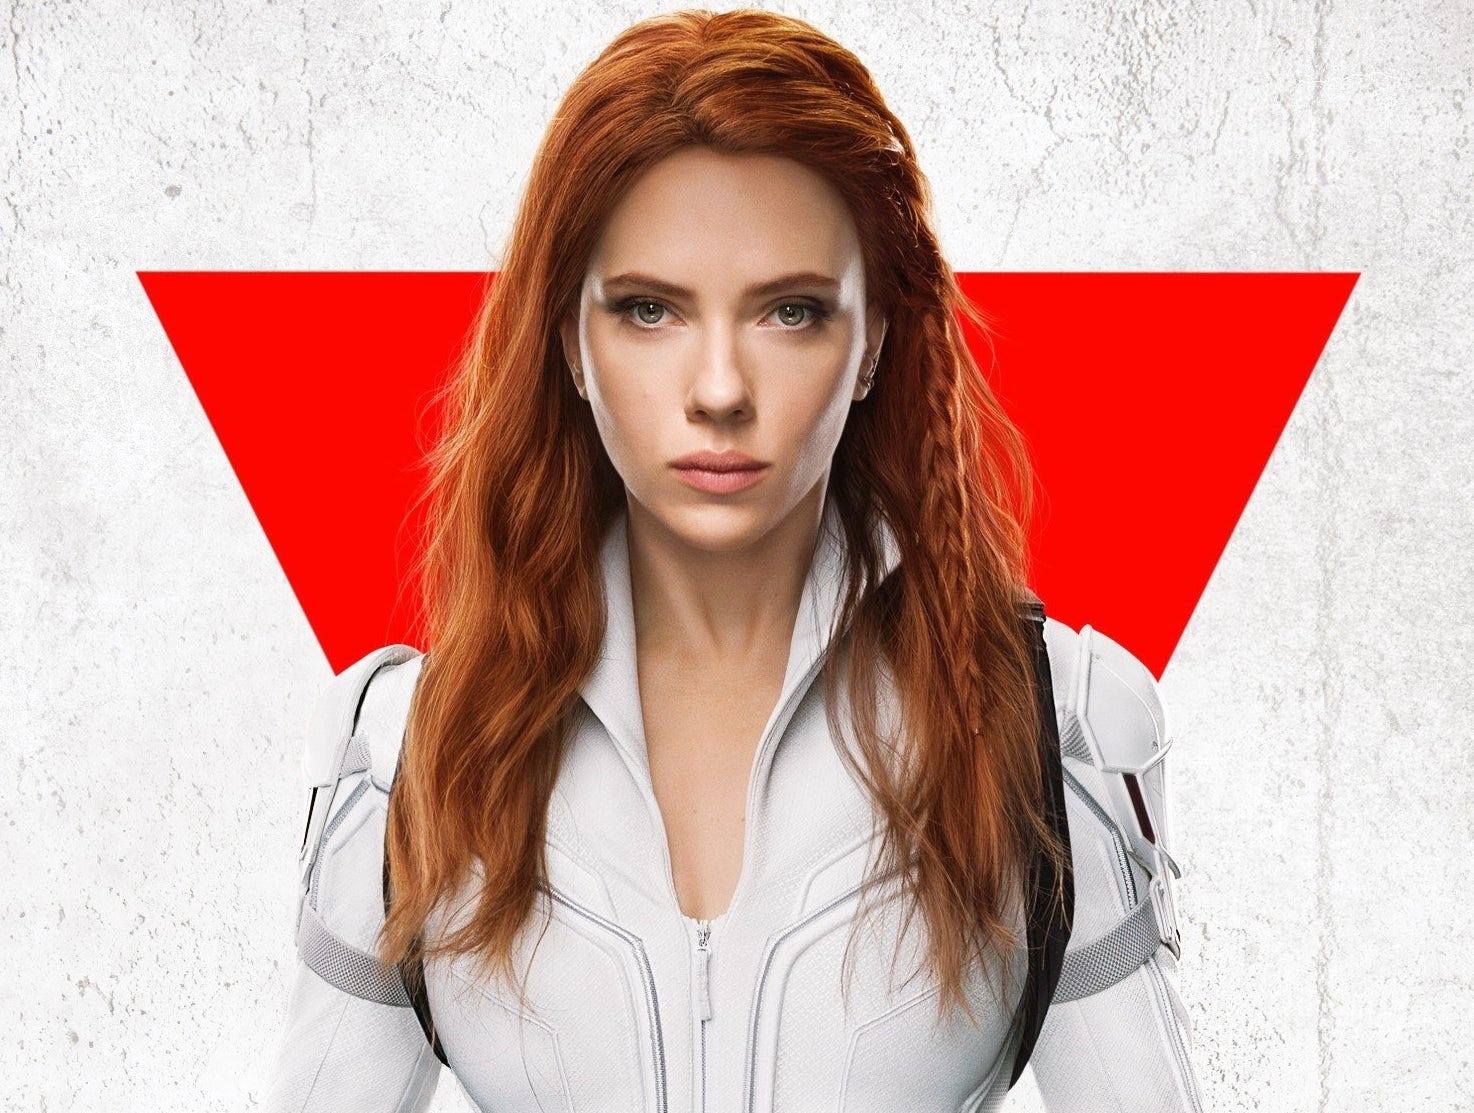 A movie poster for the new Black Widow movie